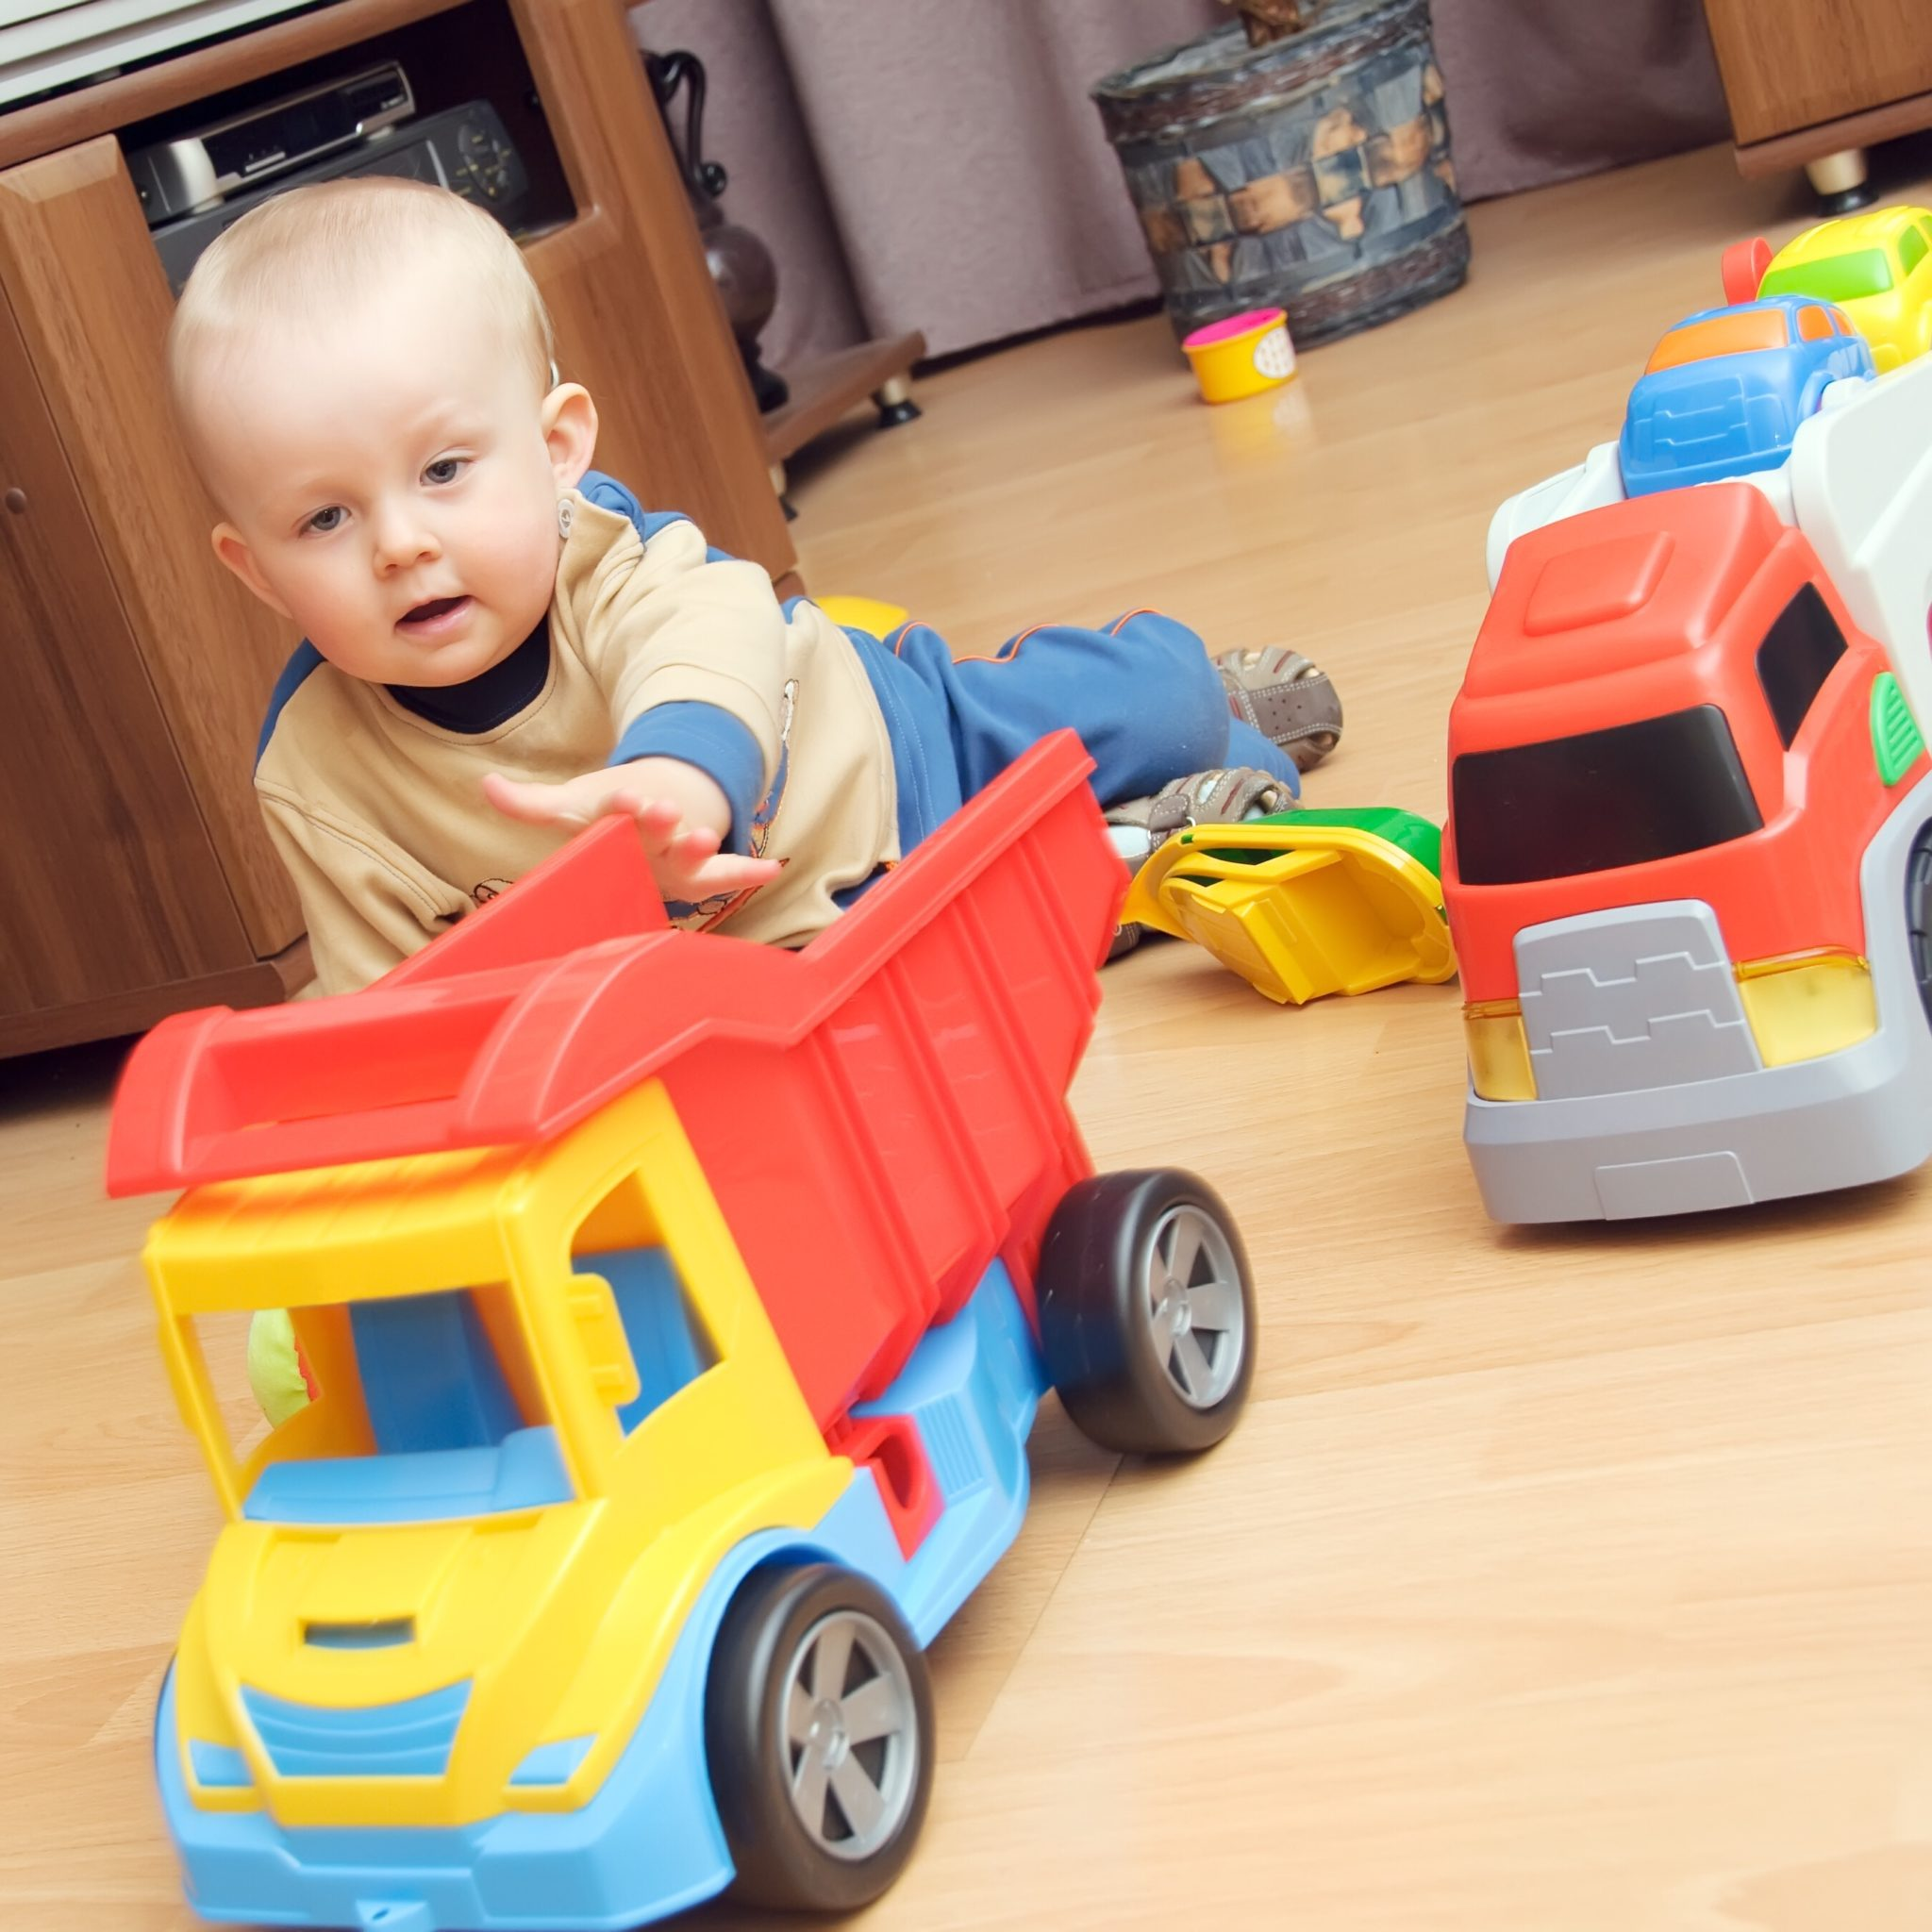 Boy playing with trucks.